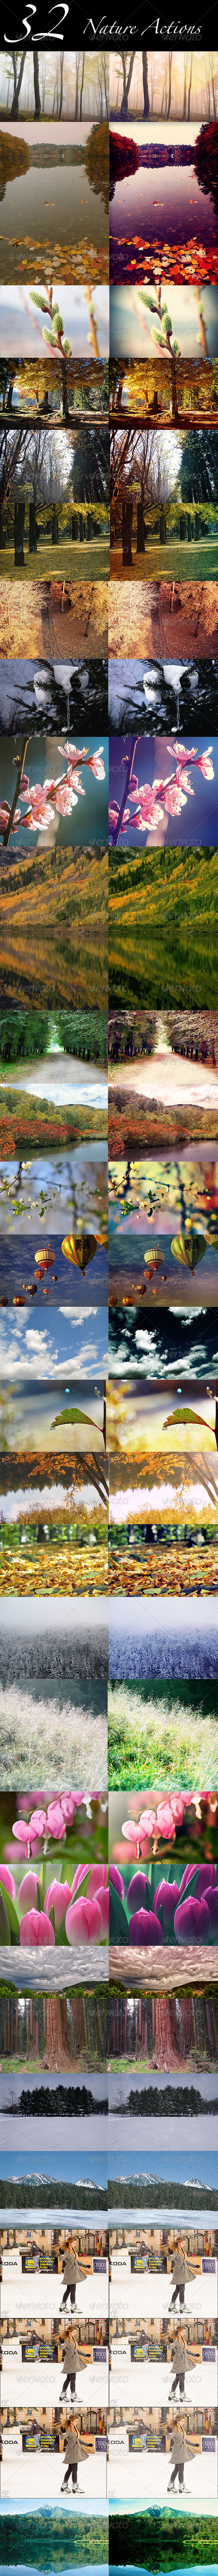 GraphicRiver Nature Actions 8504467